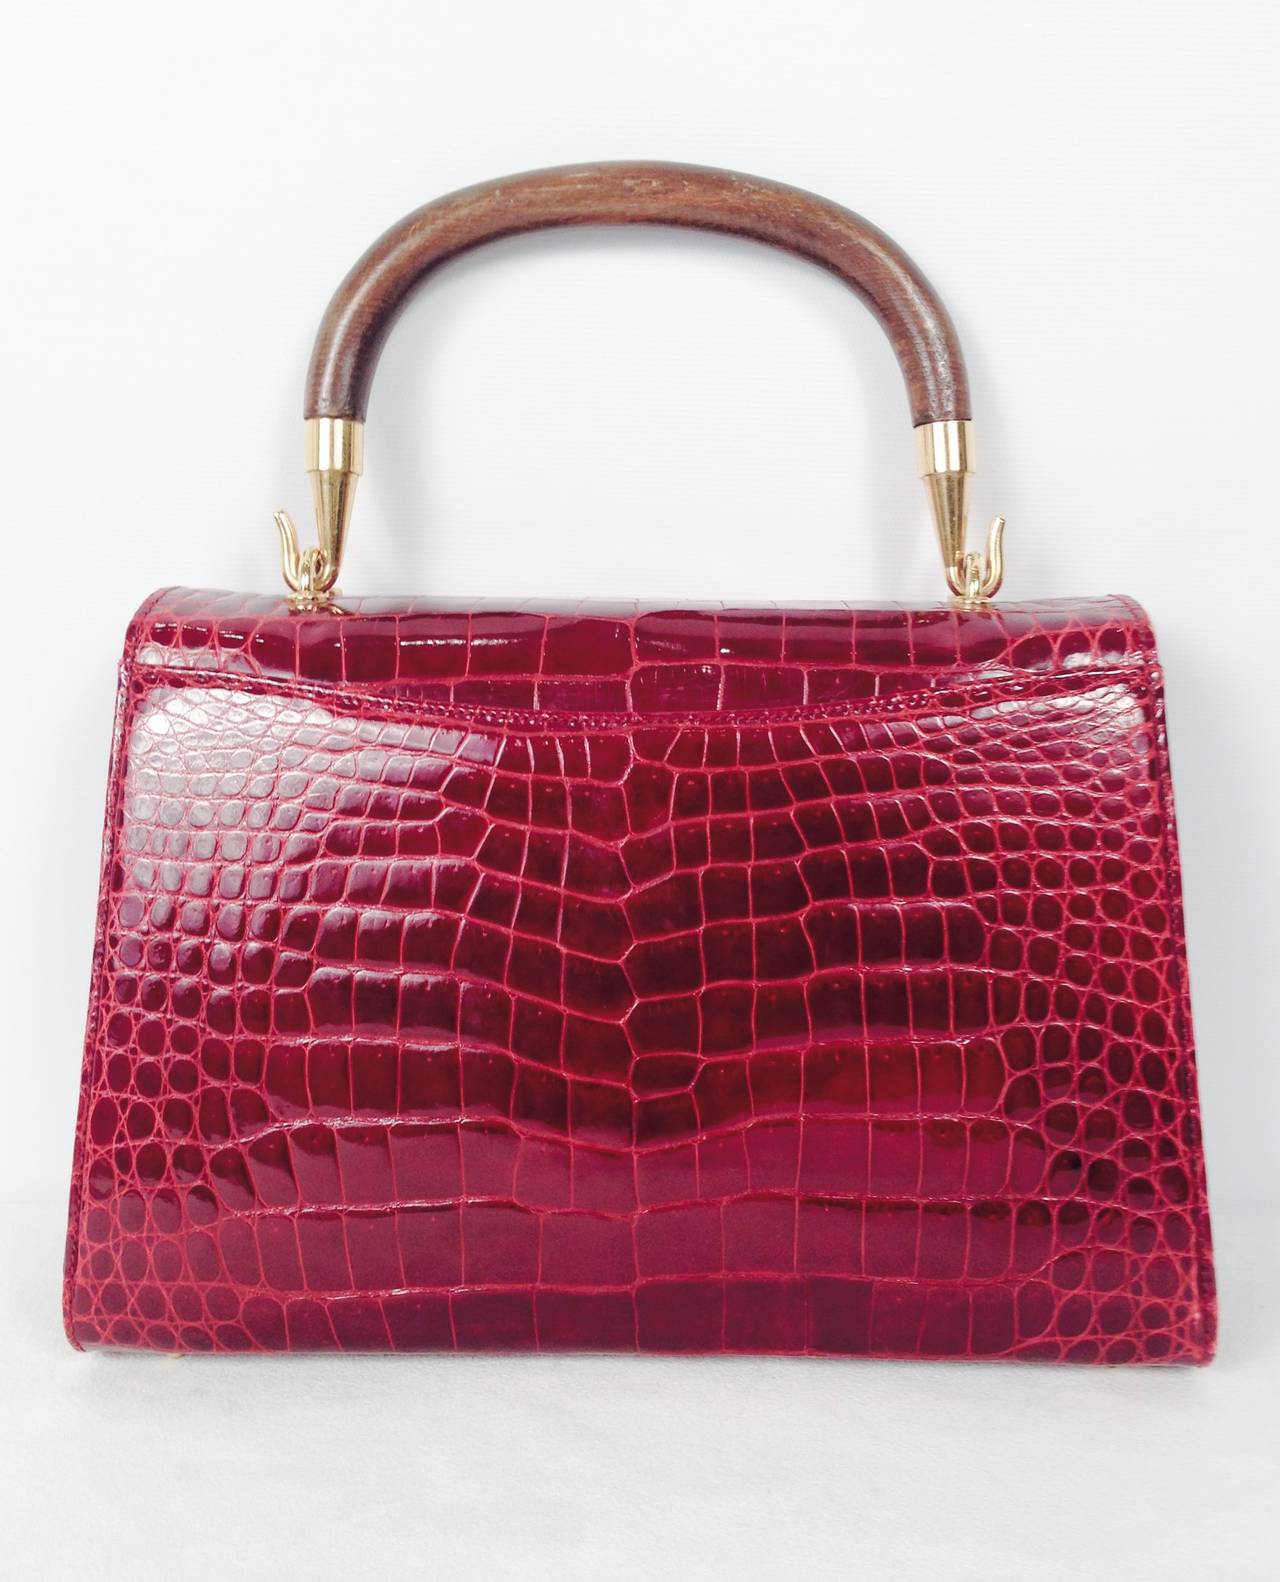 Vintage Gucci Burgundy Crocodile Handbag is an ode to the exalted craftsmanship that defines the house of Gucci.  This handbag perfectly blends form, function, and fashion!  Soft, supple burgundy crocodile is paired with wood and gold tone hardware.